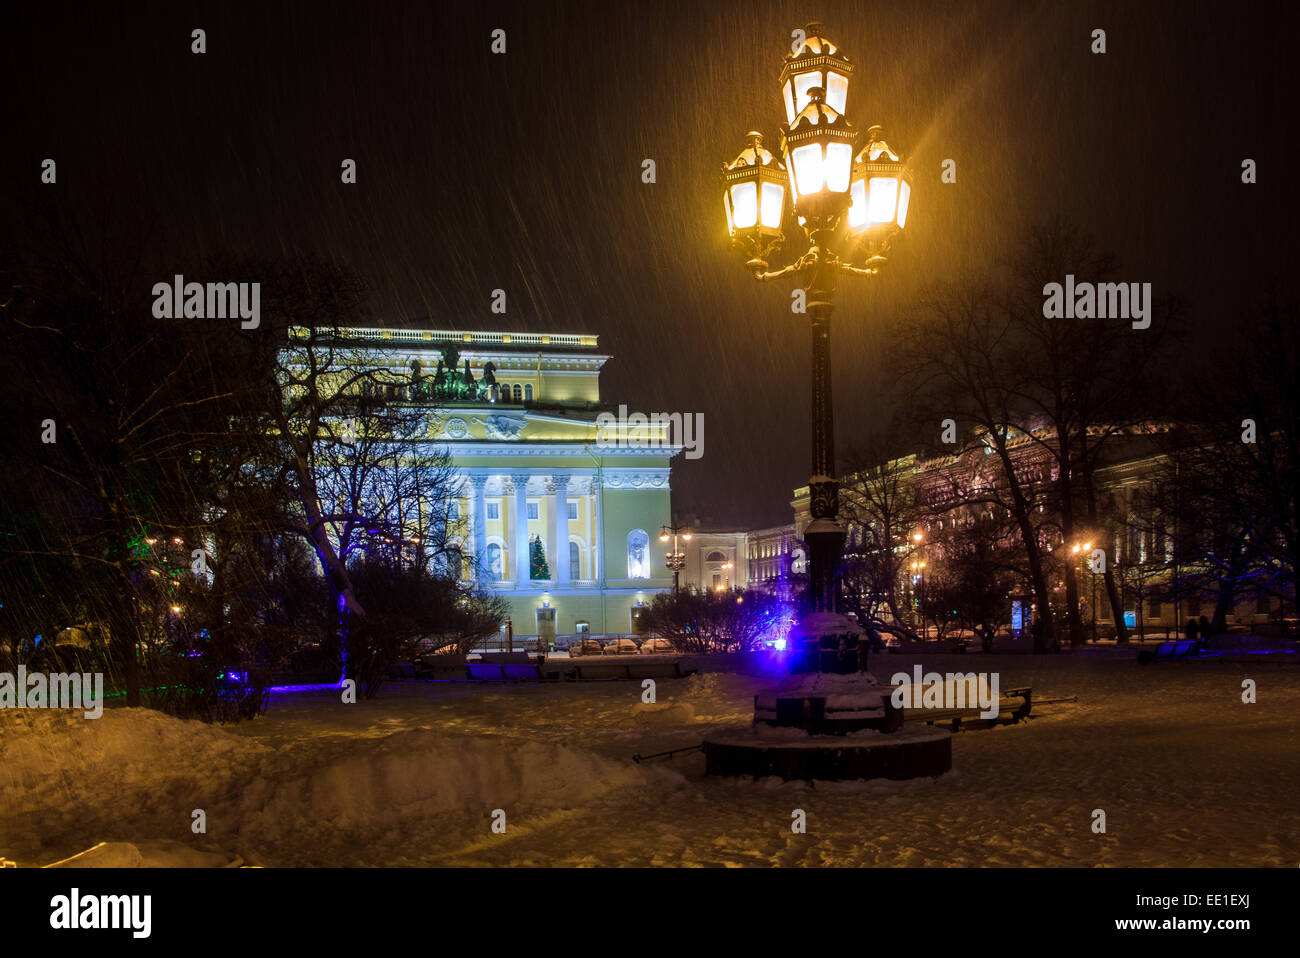 Alexandrinsky Theatre or Russian State Pushkin Academy Drama Theater St.Petersburg, Russia - Stock Image